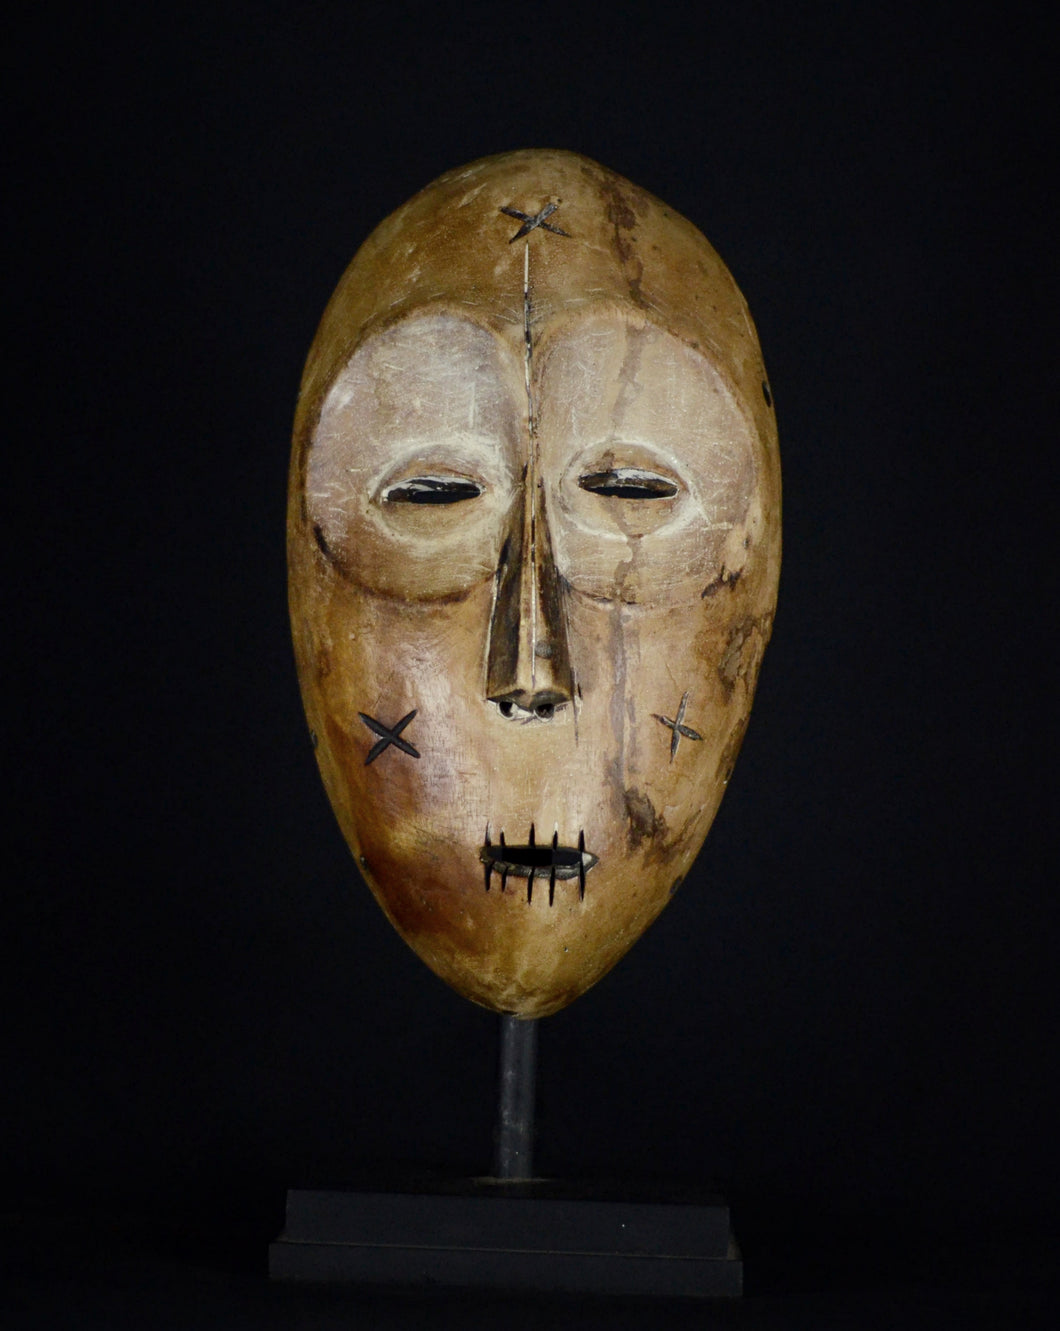 Big African Tribal LEGA Mask from the Bwami Society with scarifications - Democratic Republic of the Congo.